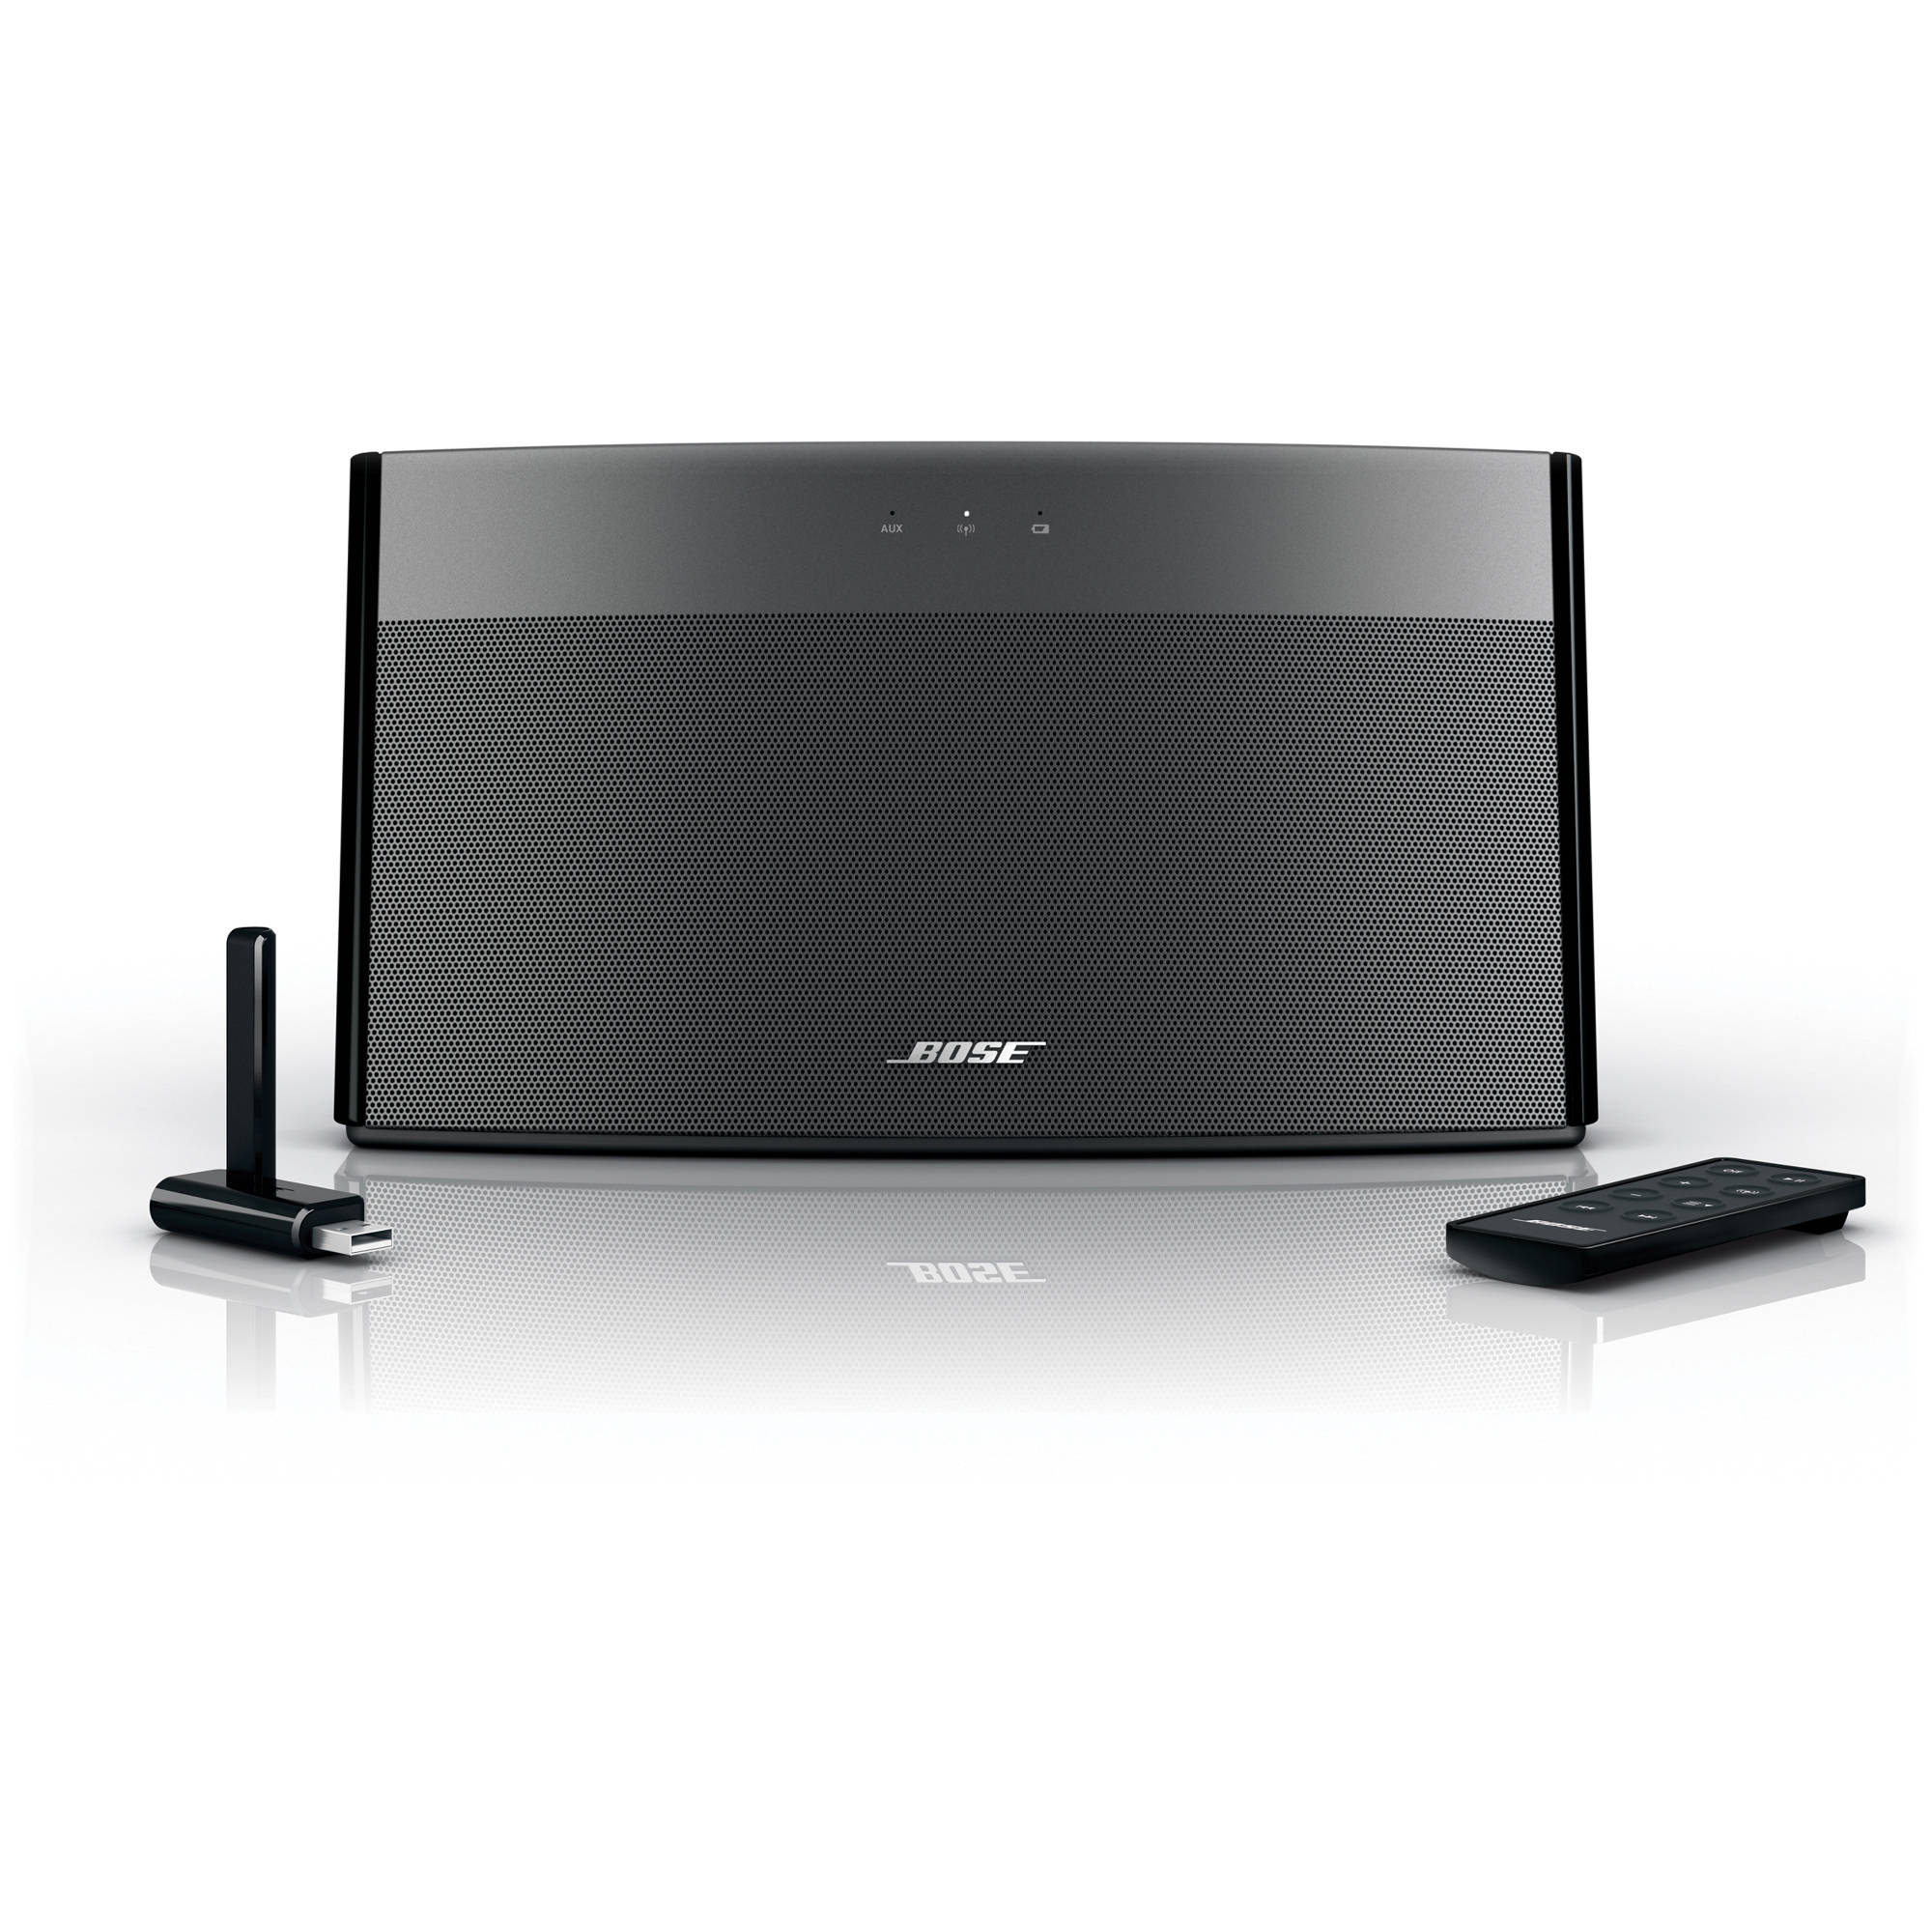 Bose SoundLink Wireless Music System 318973-1100 B&H Photo Video